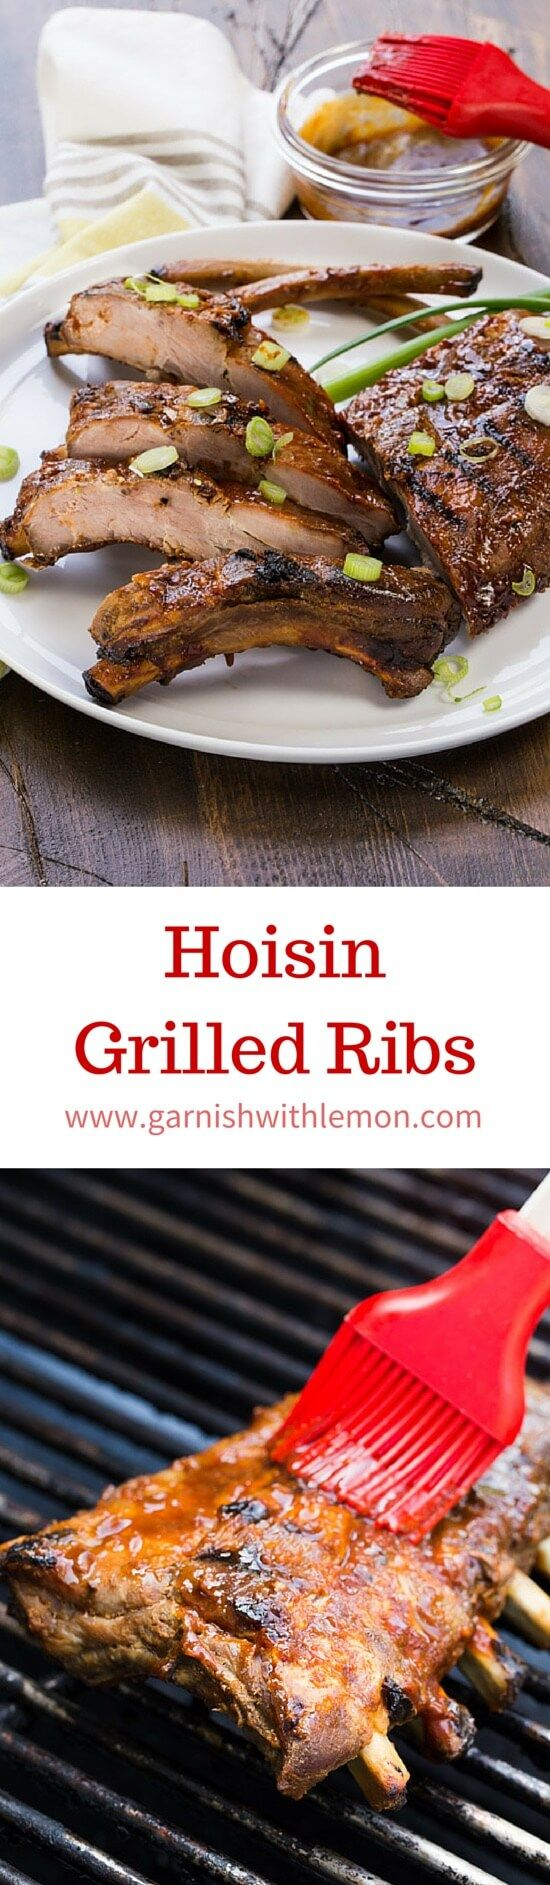 tasty ribs just got easier! These Asian-flavored Hoisin Grilled Ribs ...